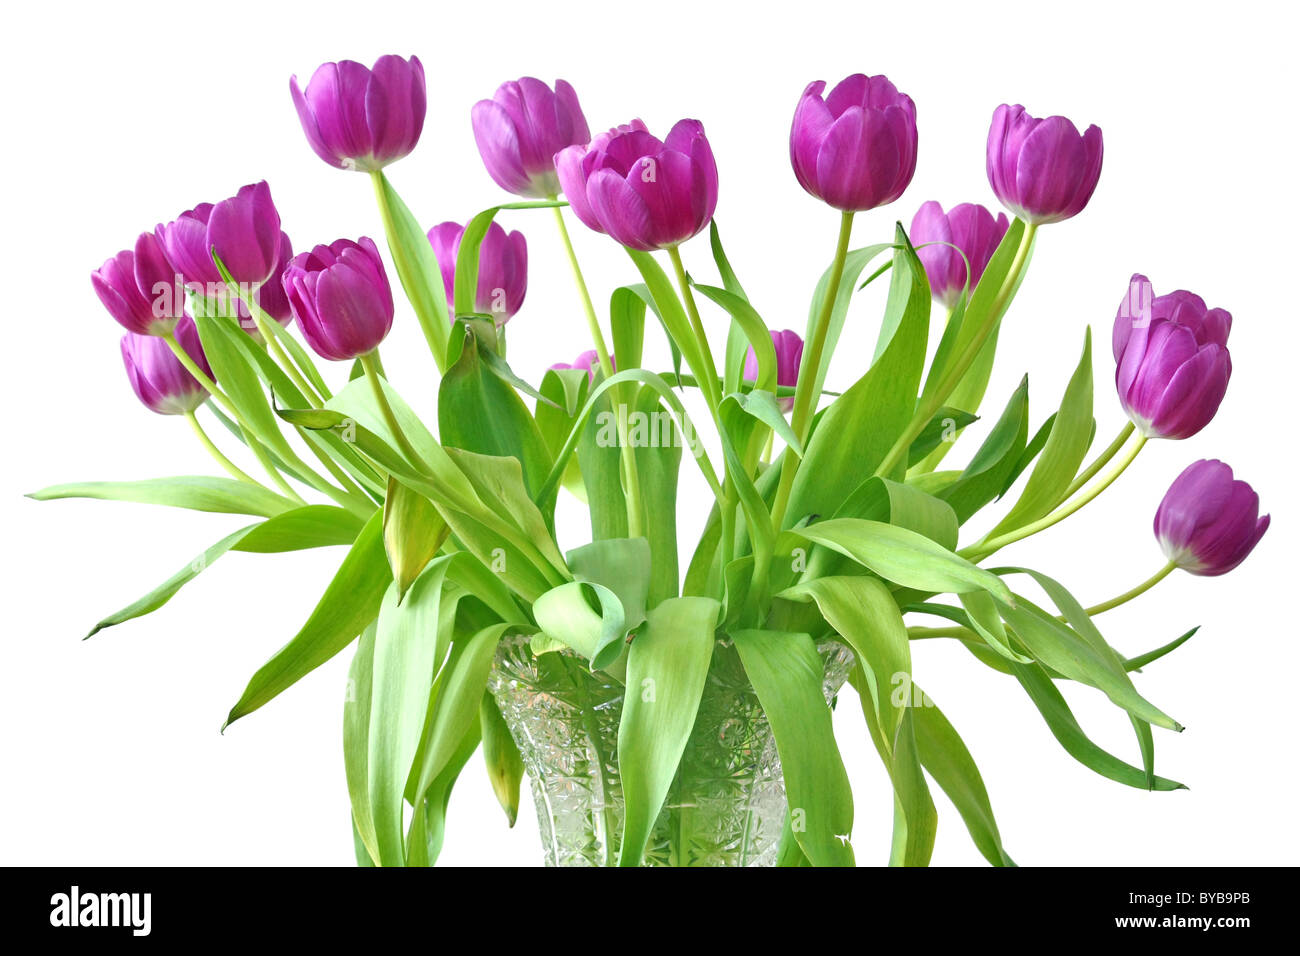 violet tulips - Stock Image